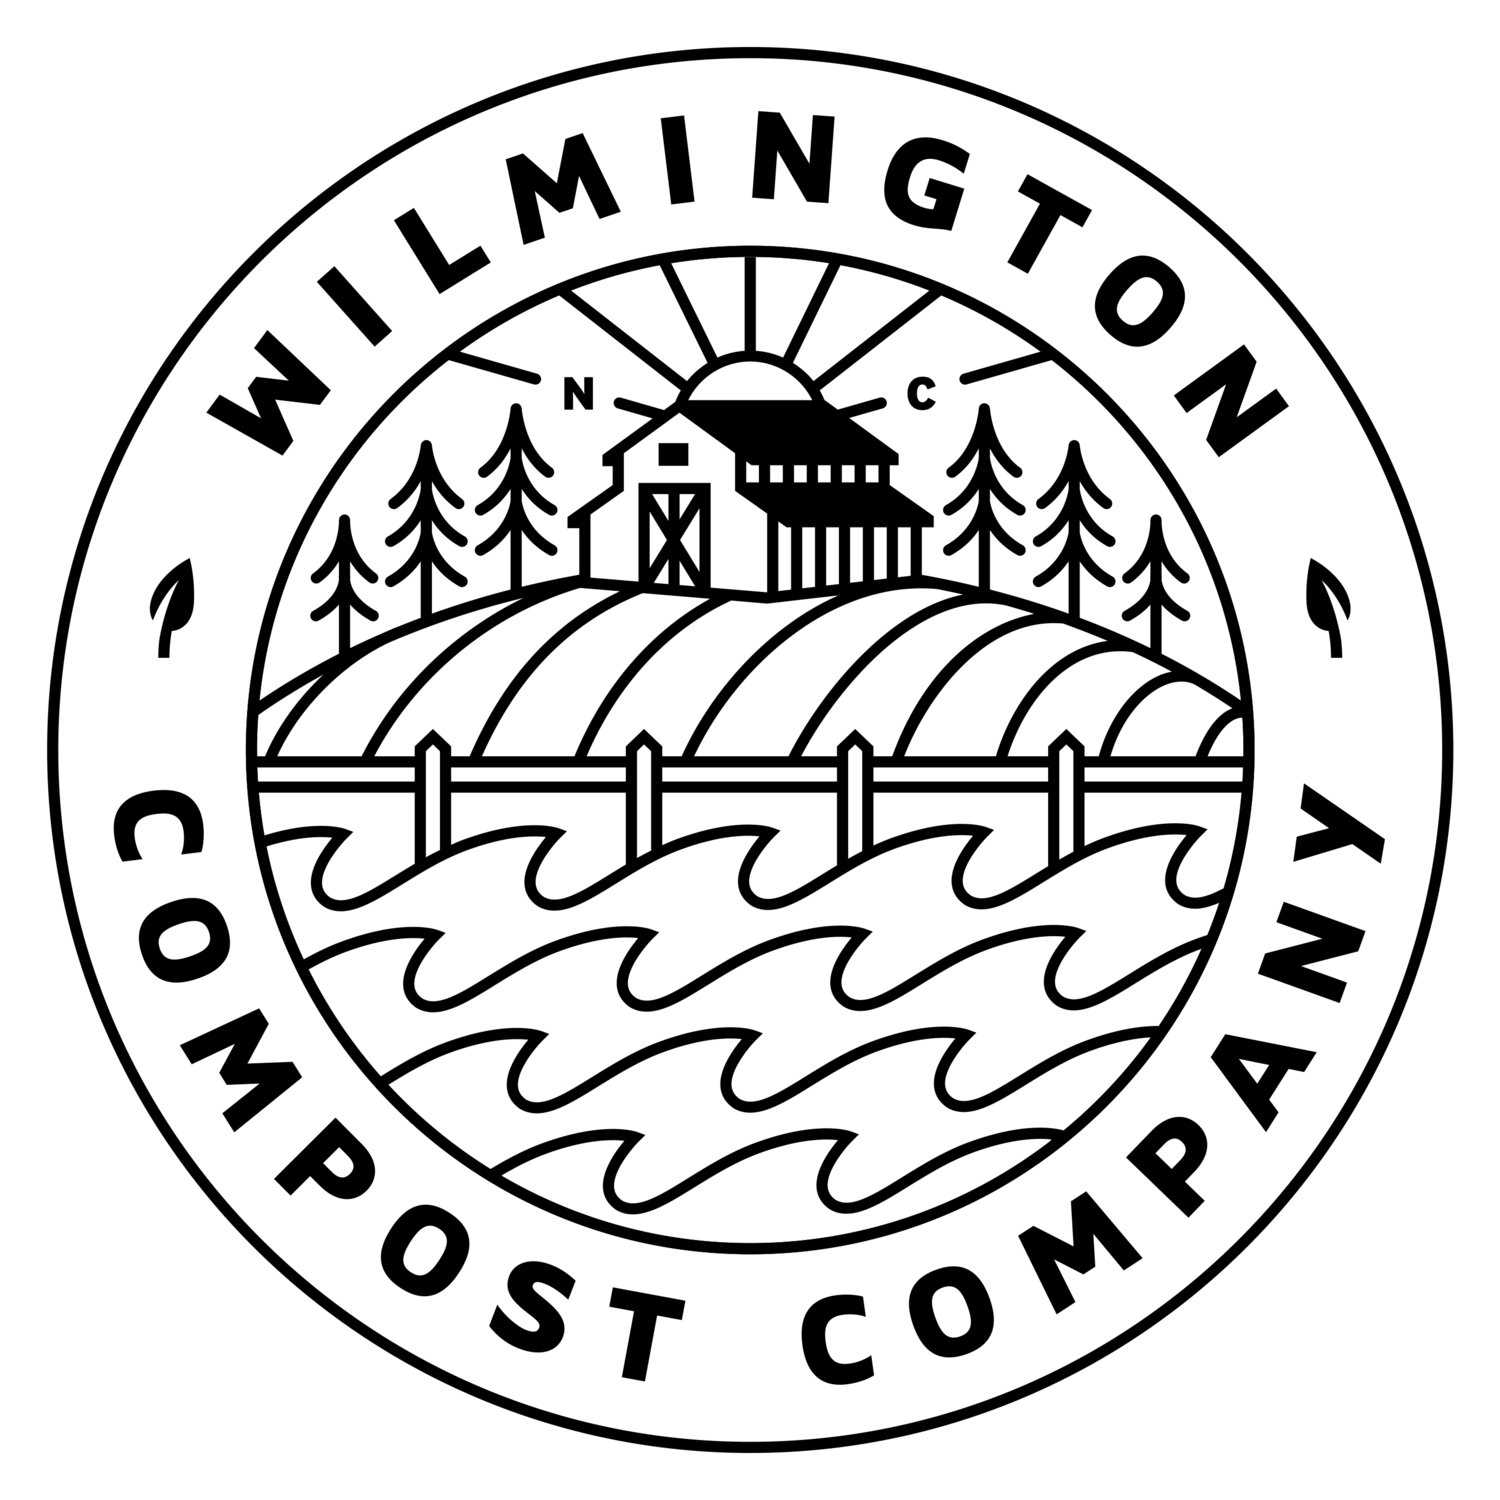 WILMINGTON COMPOST COMPANY